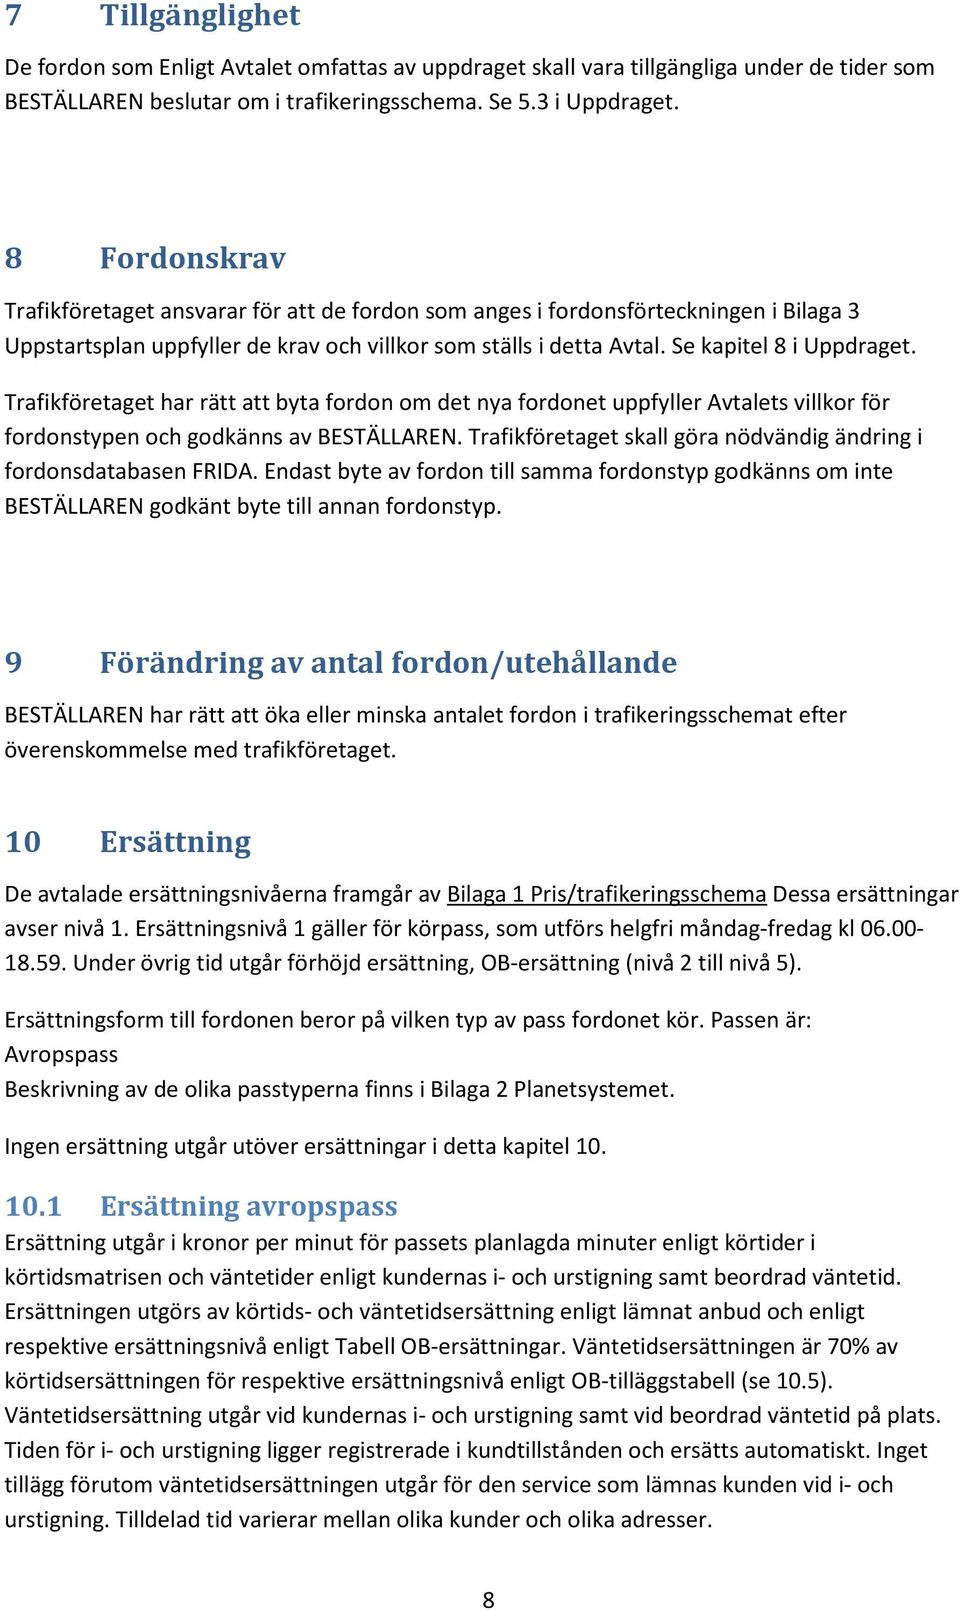 Taxilegitimation nodvandig